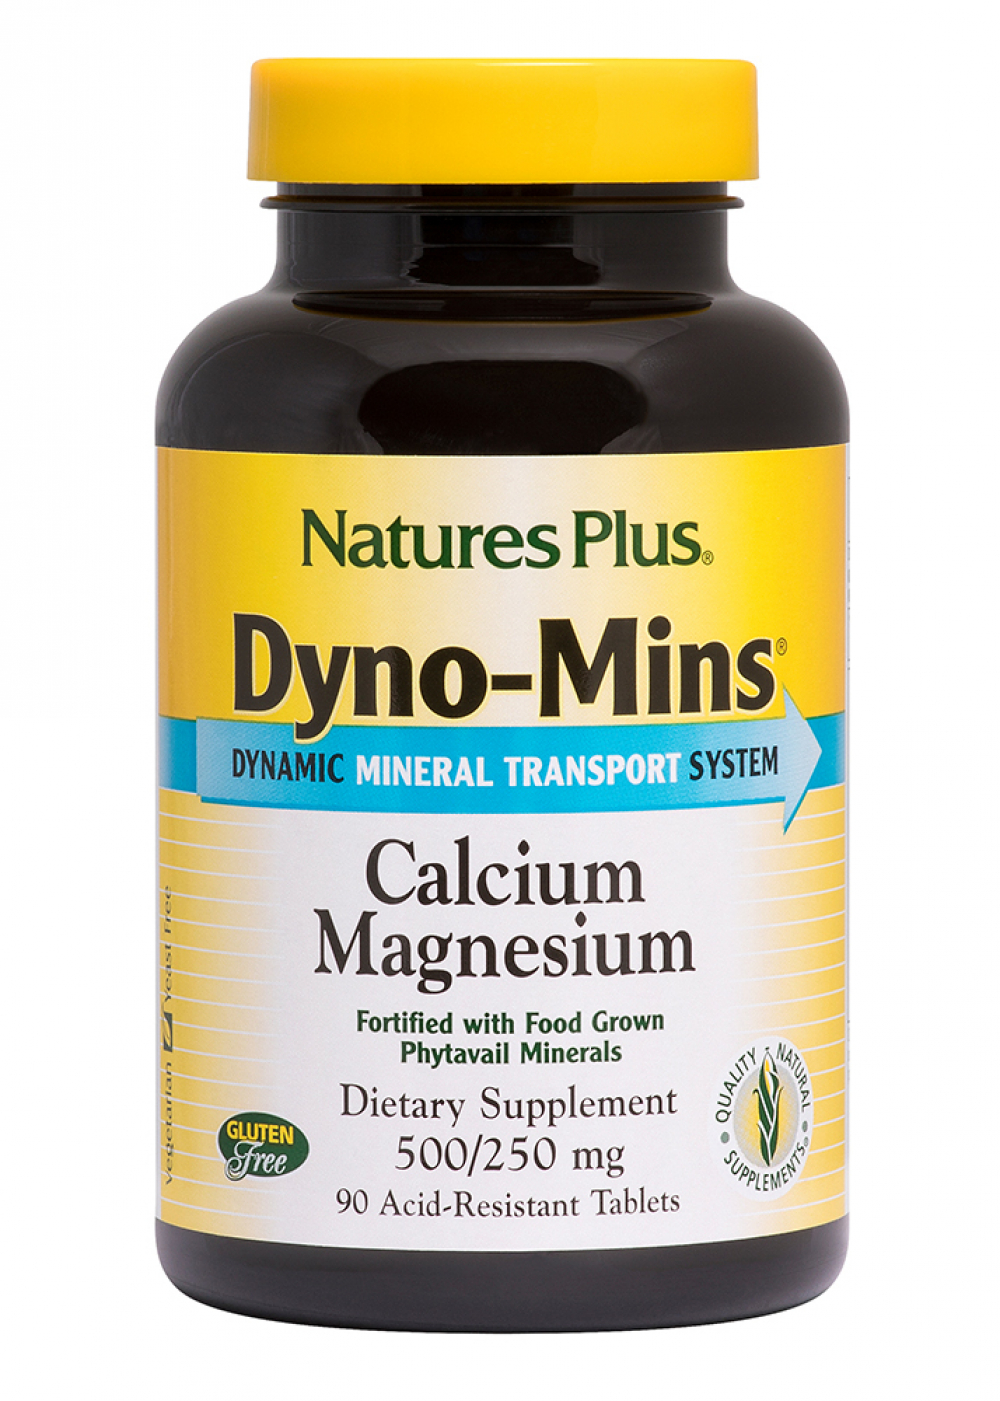 Natures Plus DYNO-MINS® Calcium Magnesium 90 Tabletten (212g)